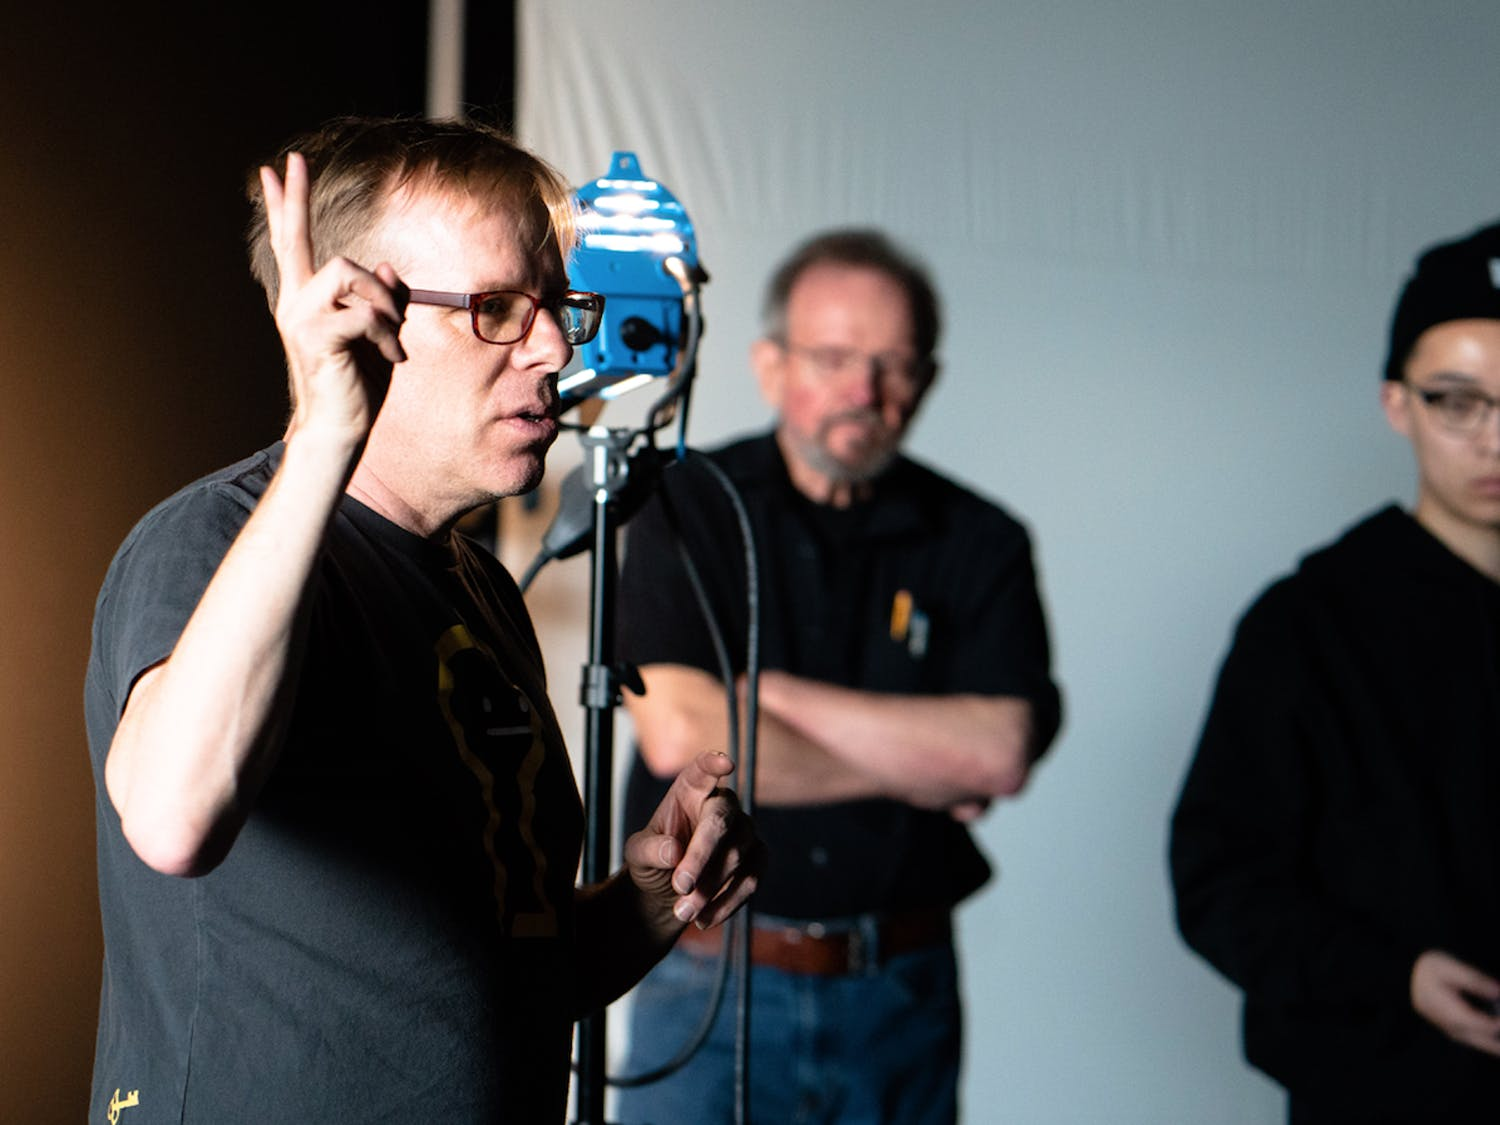 AMI Lecturing Fellow Steve Milligan leads a production workshop.